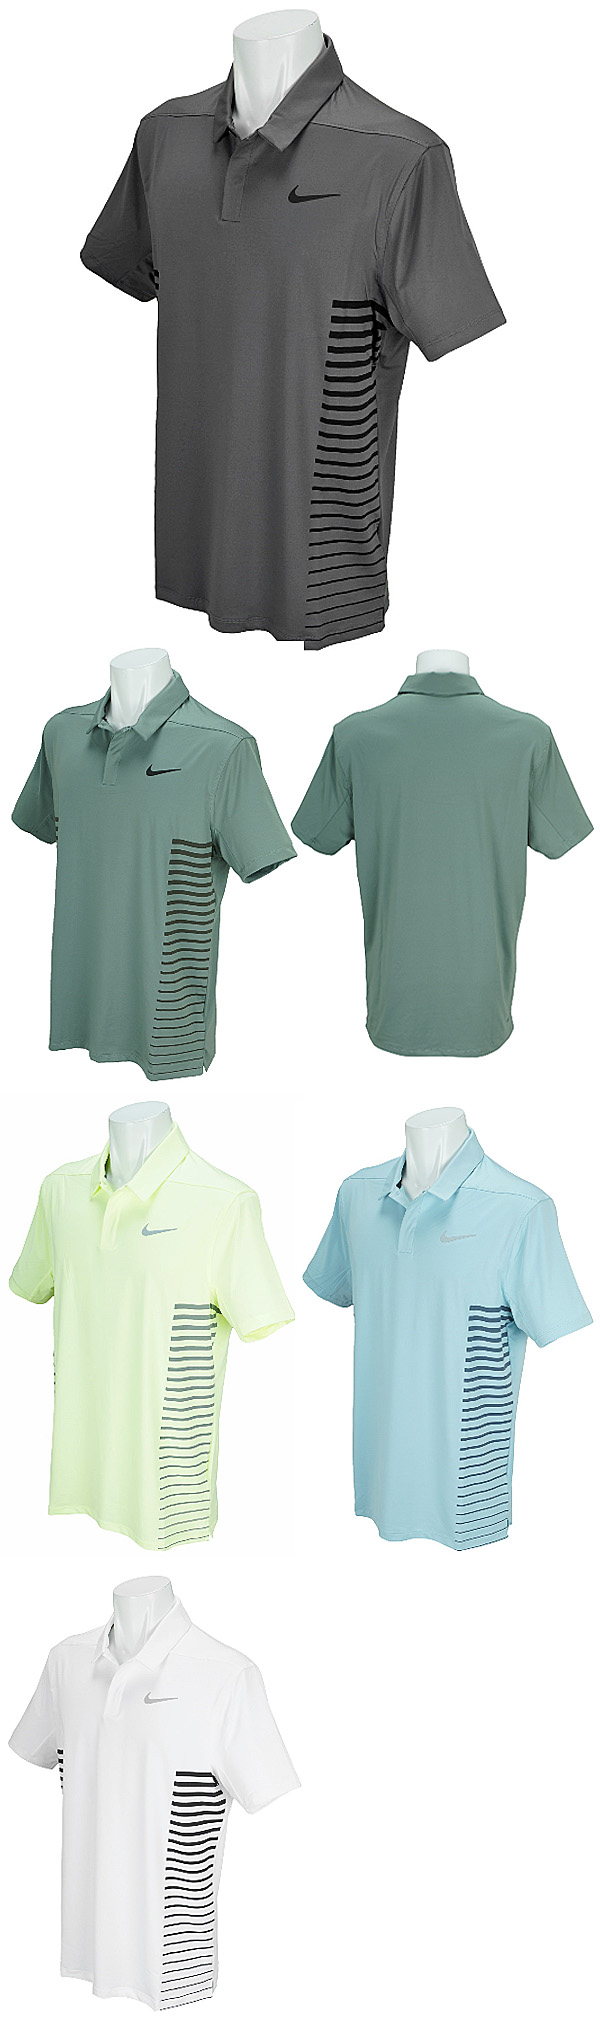 aa8f18200aa7 Nike Golf Japan 2018 Spring Summer DRI-FIT Print Short Sleeves Polo Shirt - Golf  Japan - Pro Golf Japan